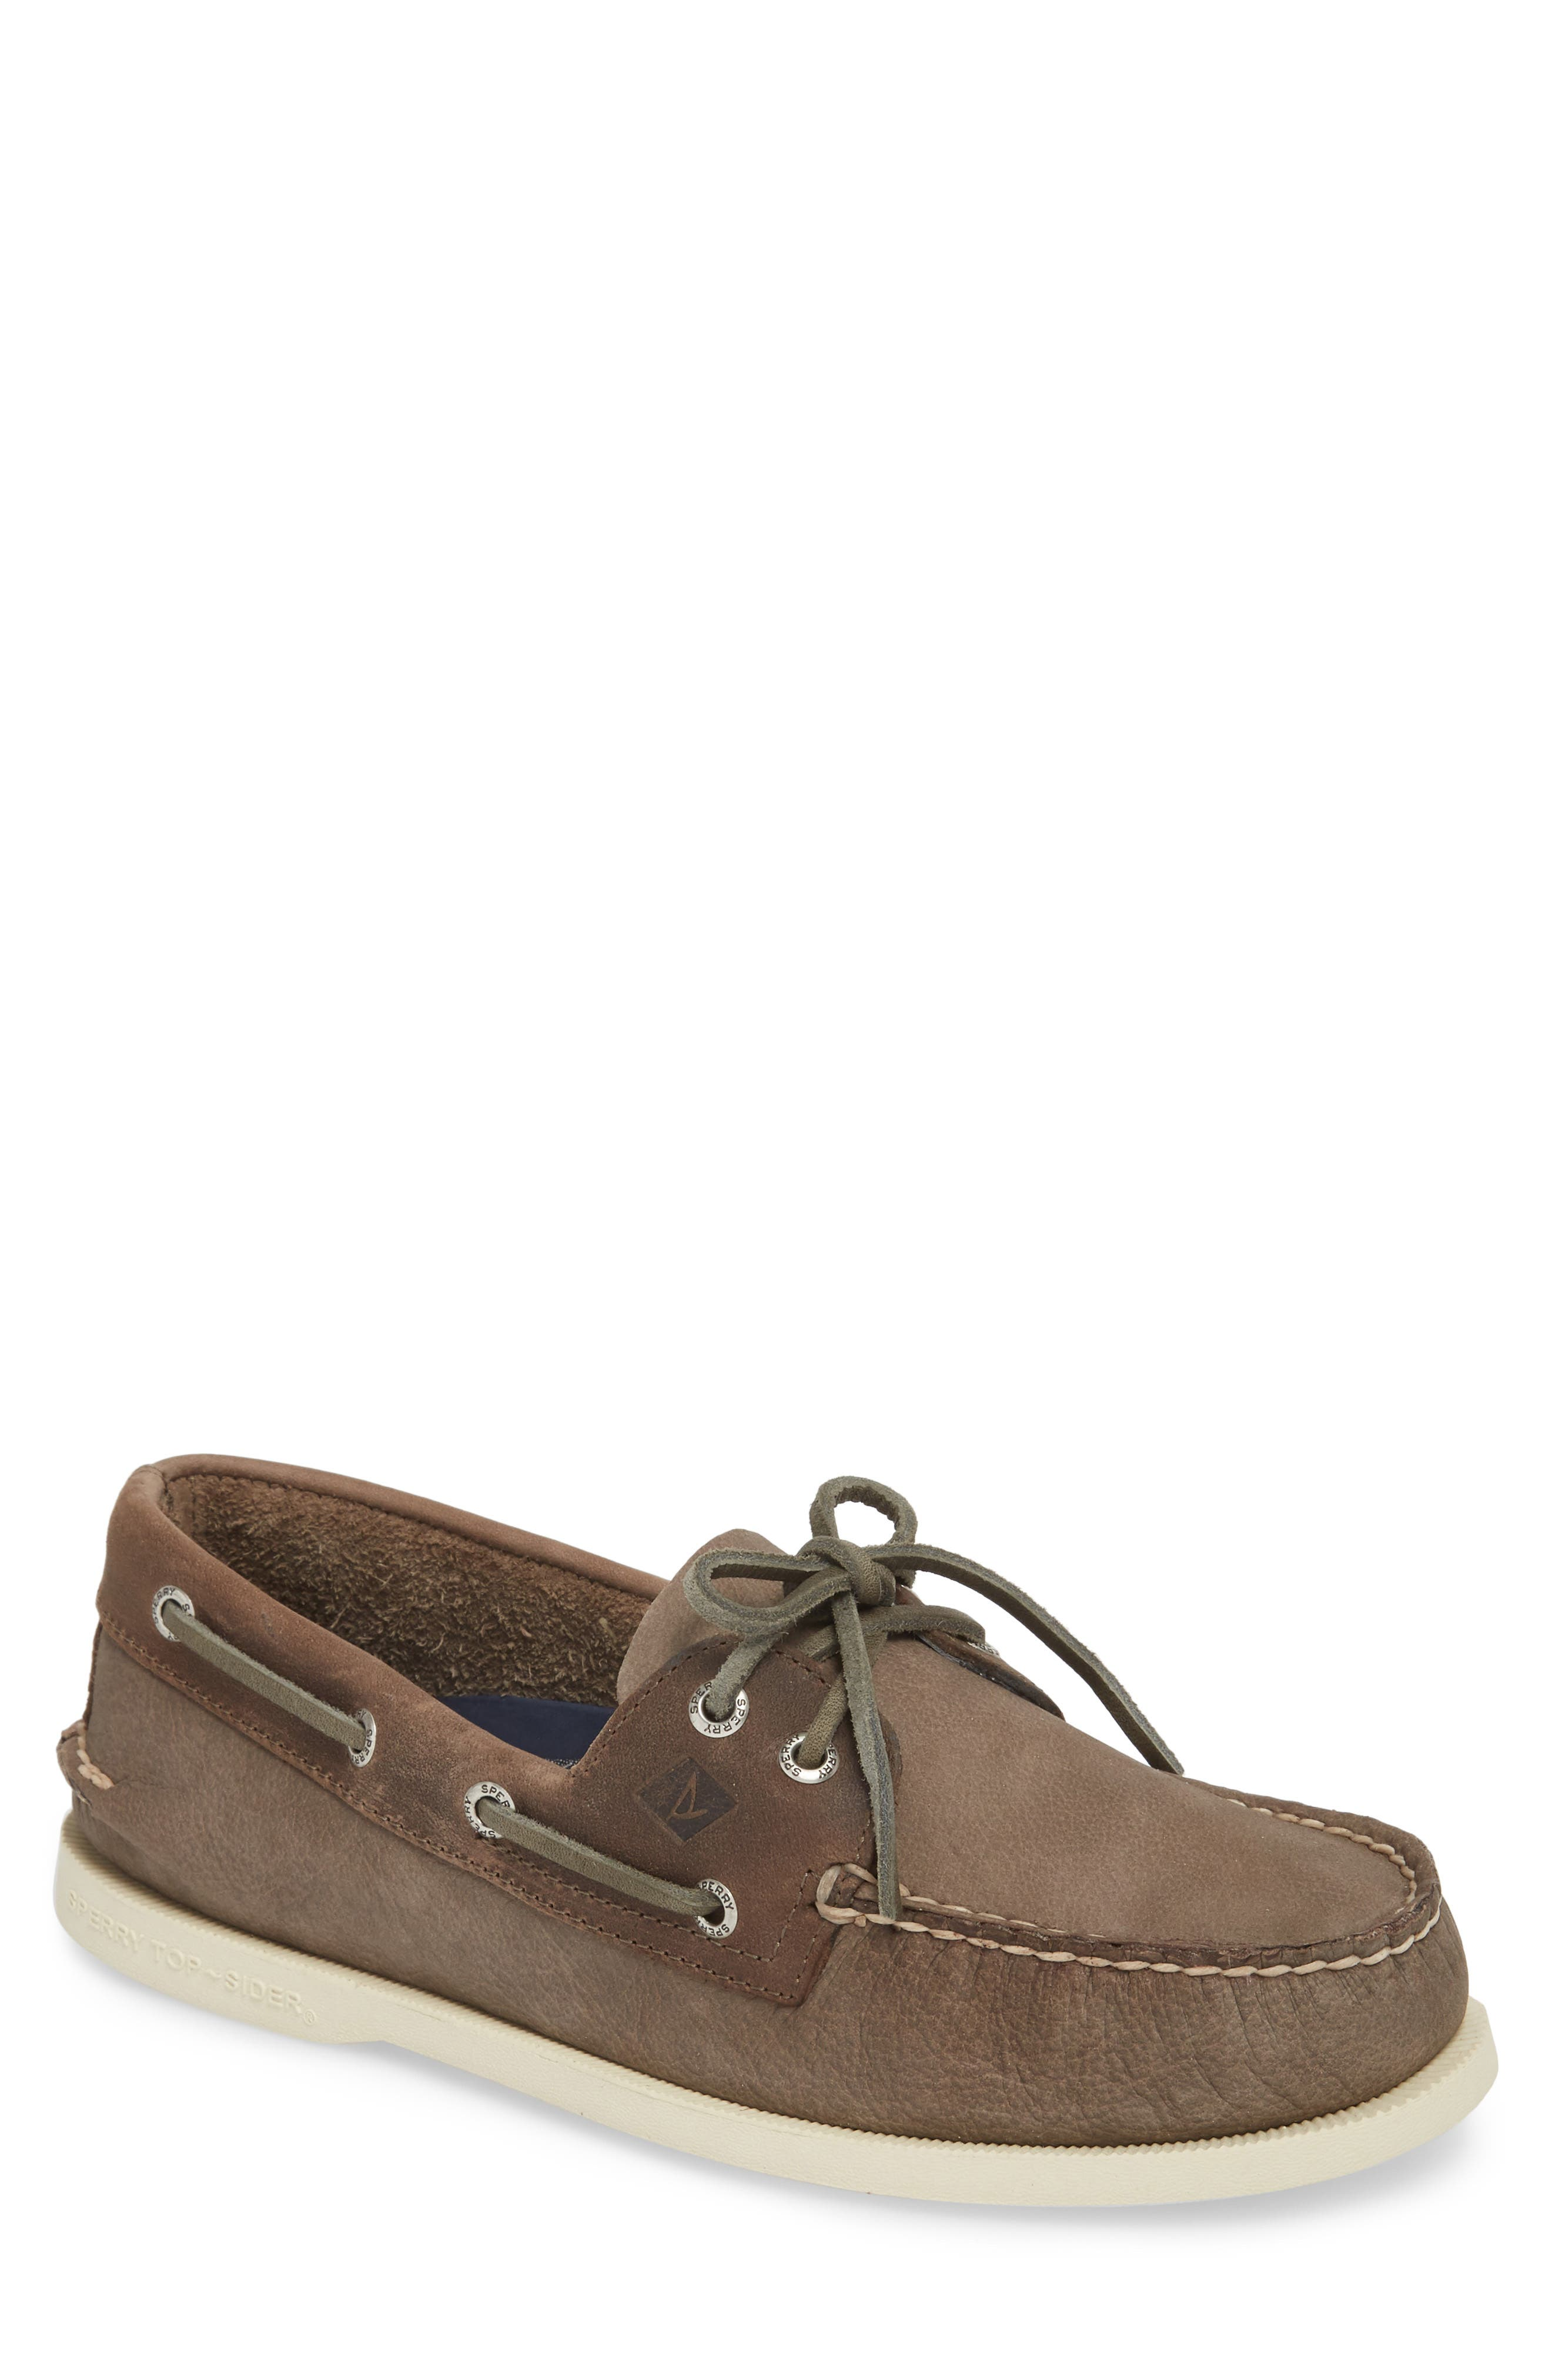 Authentic Original Two-Eye Boat Shoe,                         Main,                         color, GREY/ CHARCOAL LEATHER